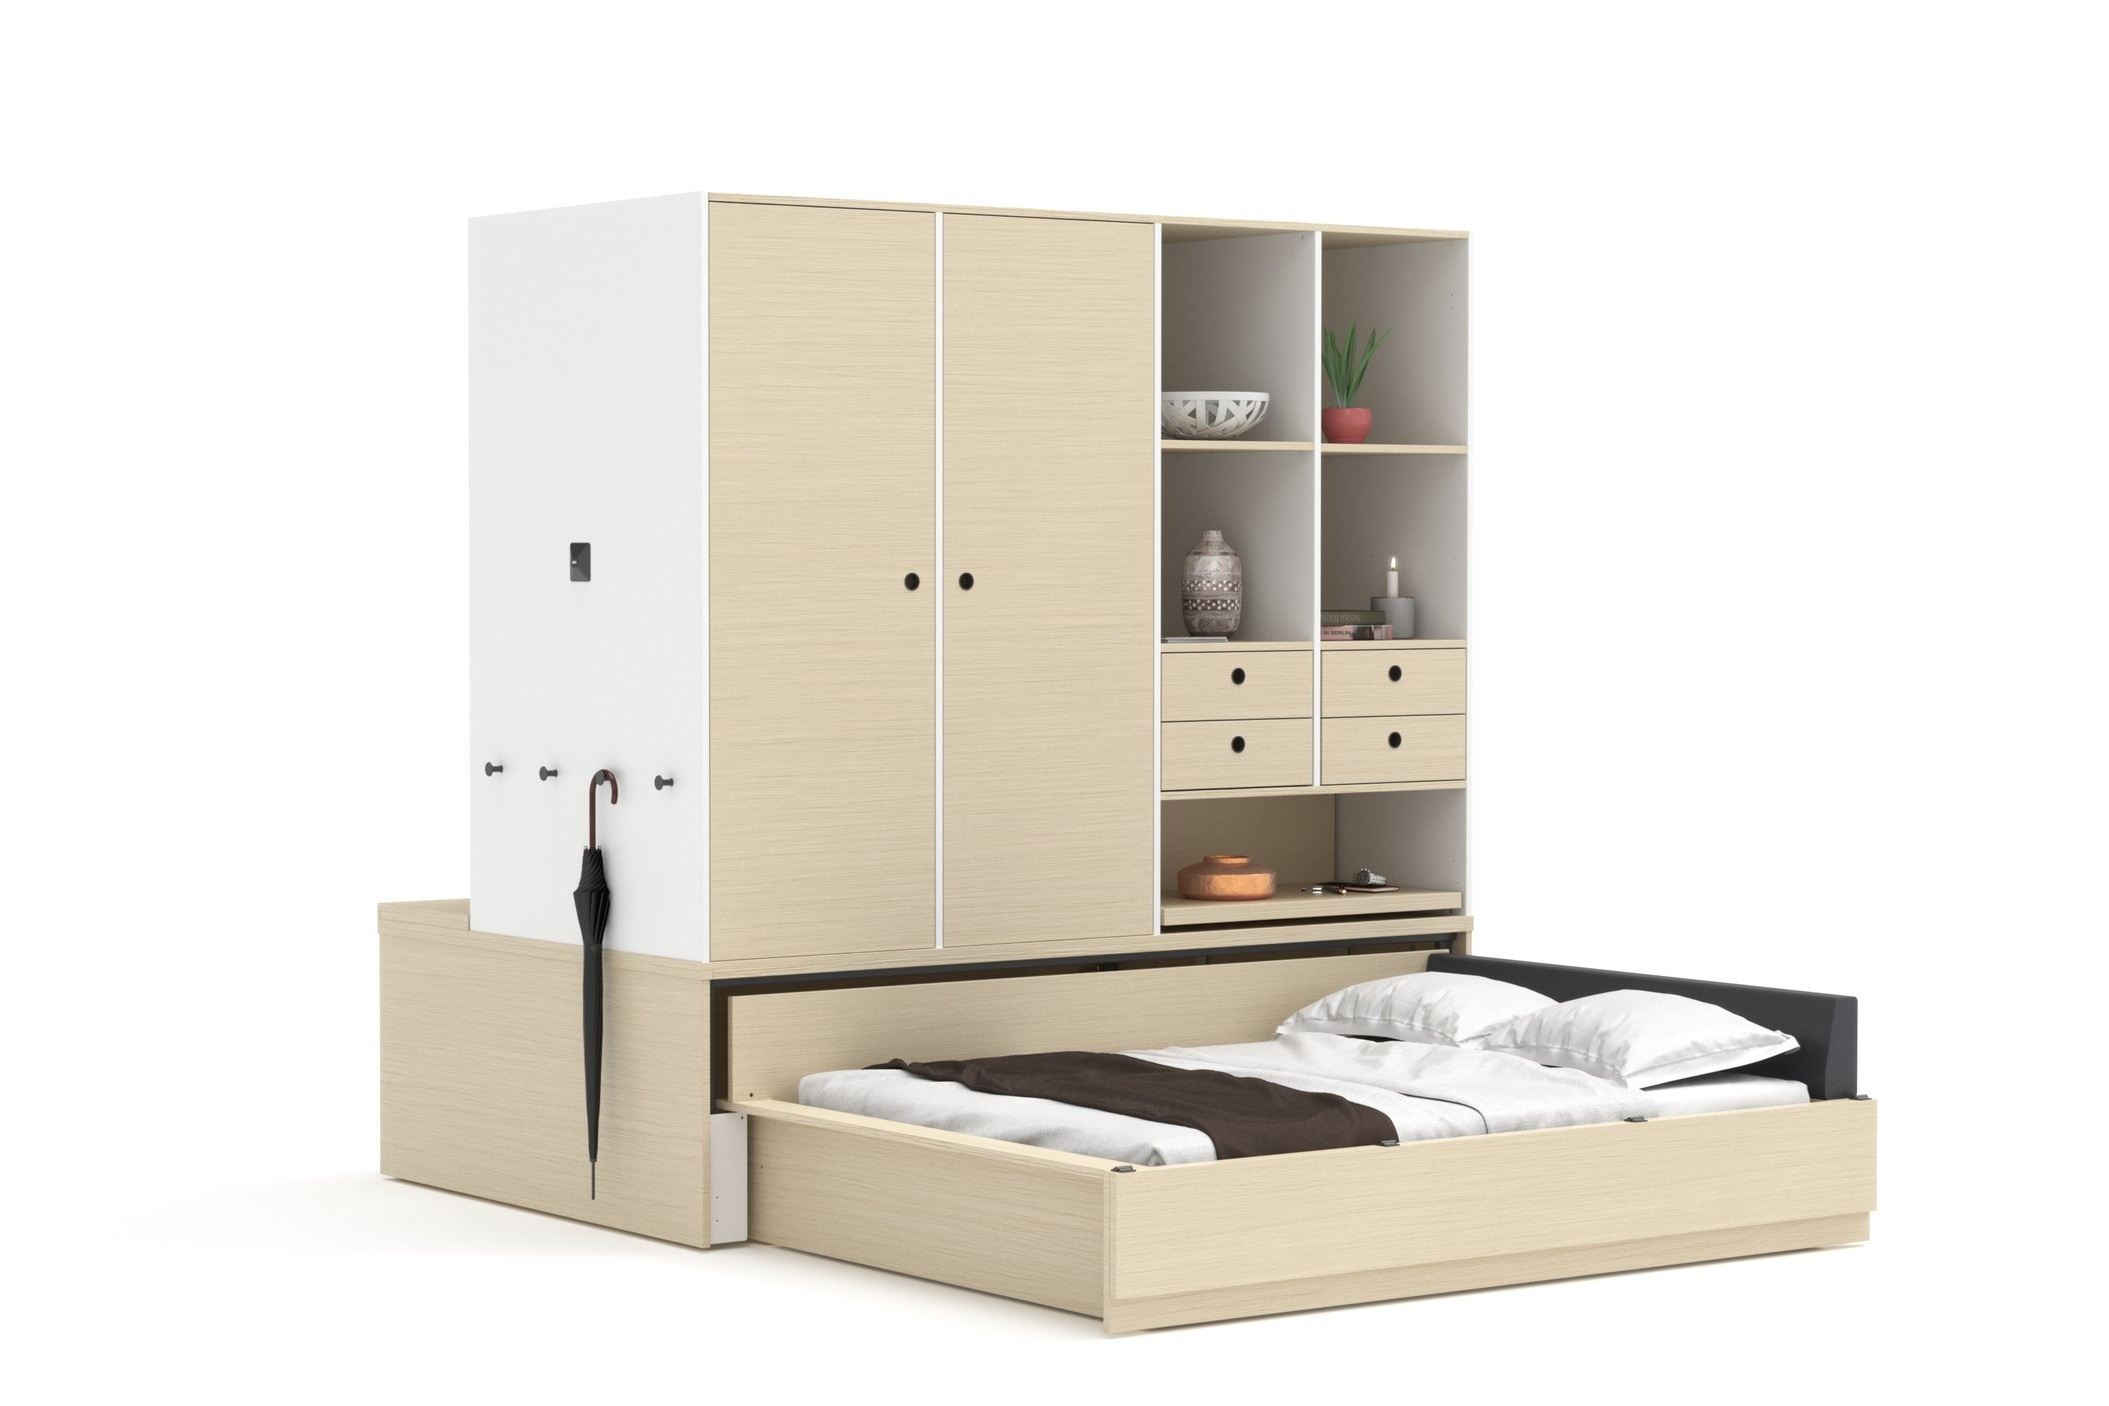 Regular Configuration, bed opens to closet side